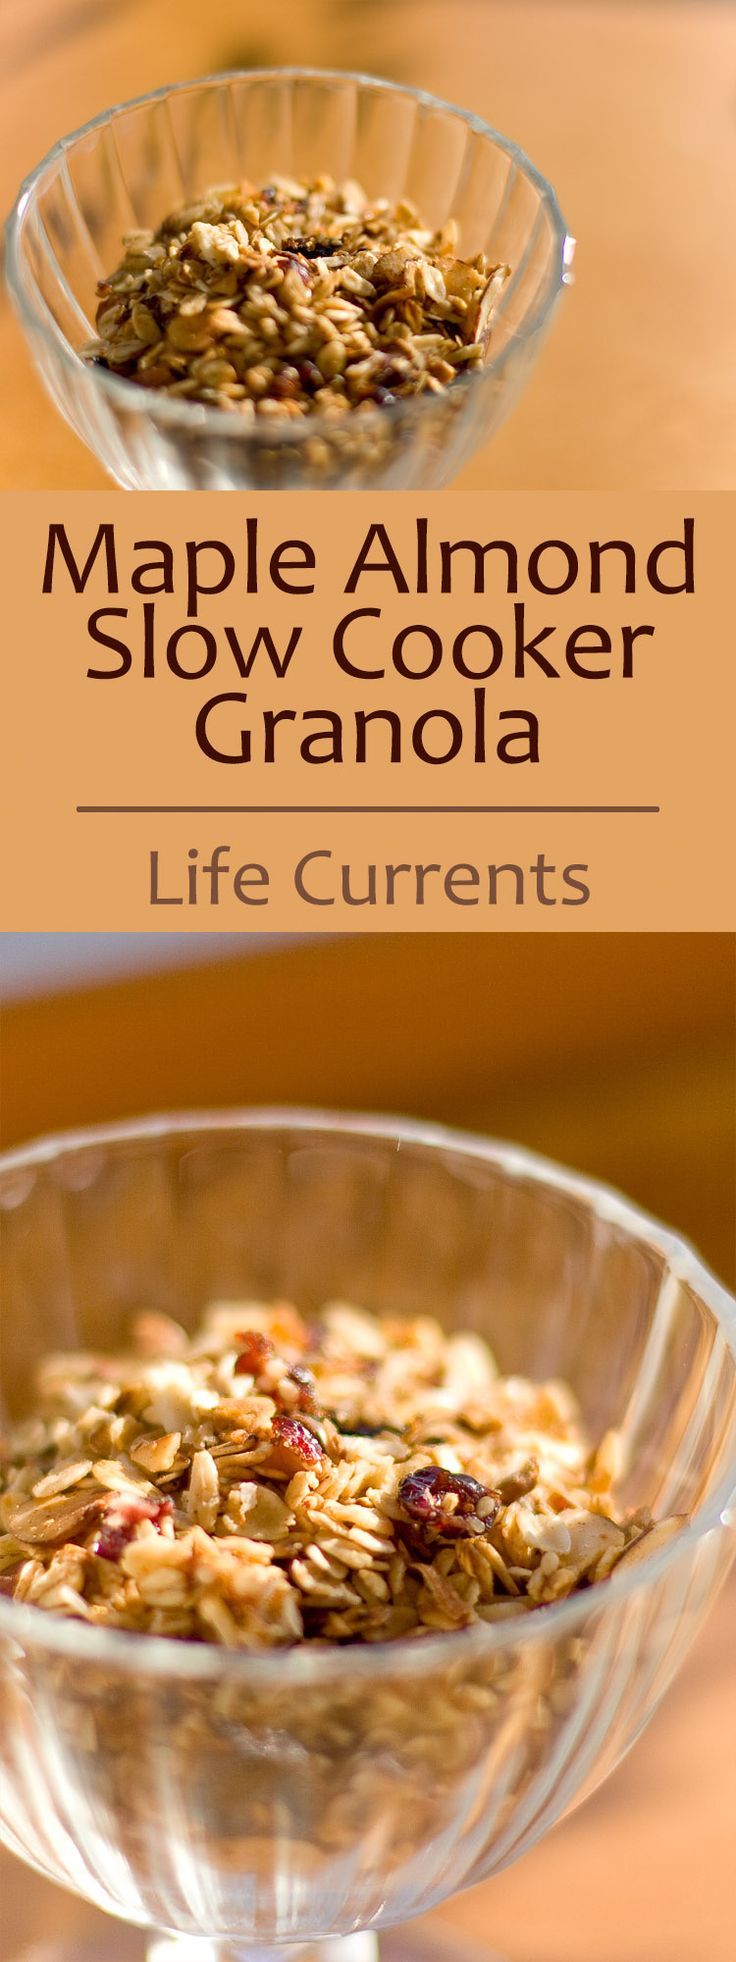 My Christmas Brunch menu plus an awesome recipe for Maple Almond Slow Cooker Granola - this recipe is so easy and so good!